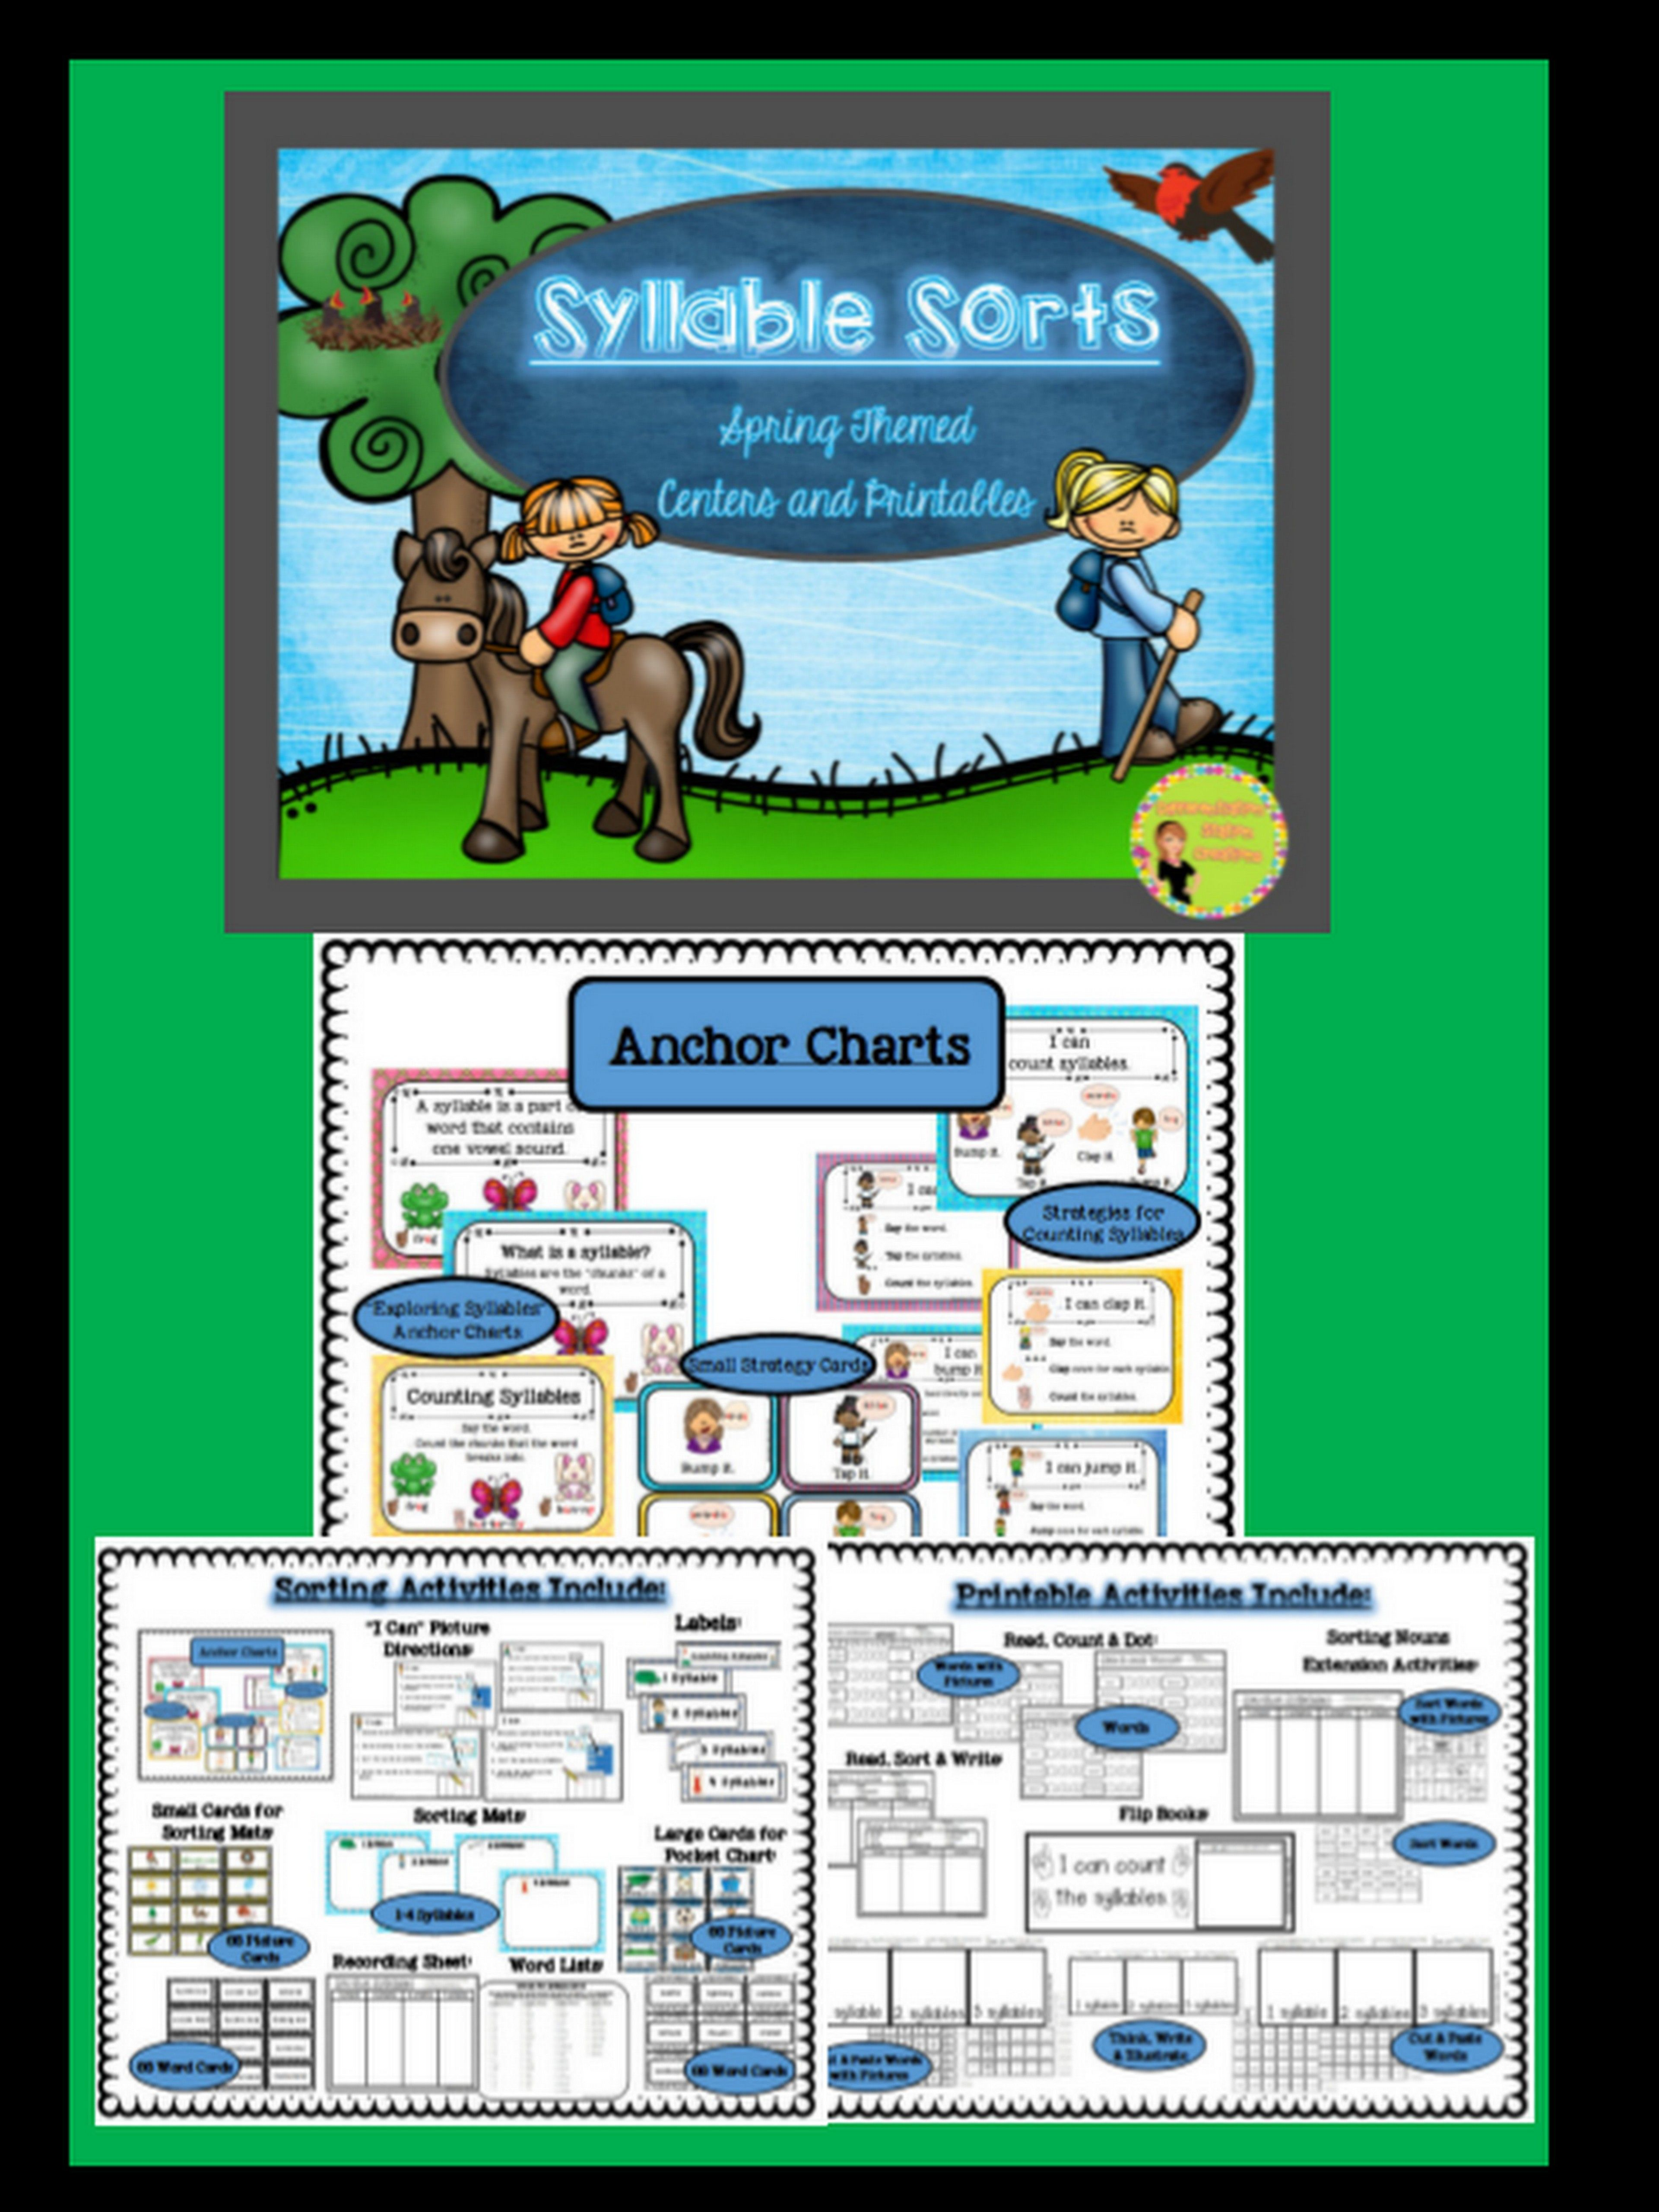 Syllable Sorts Spring